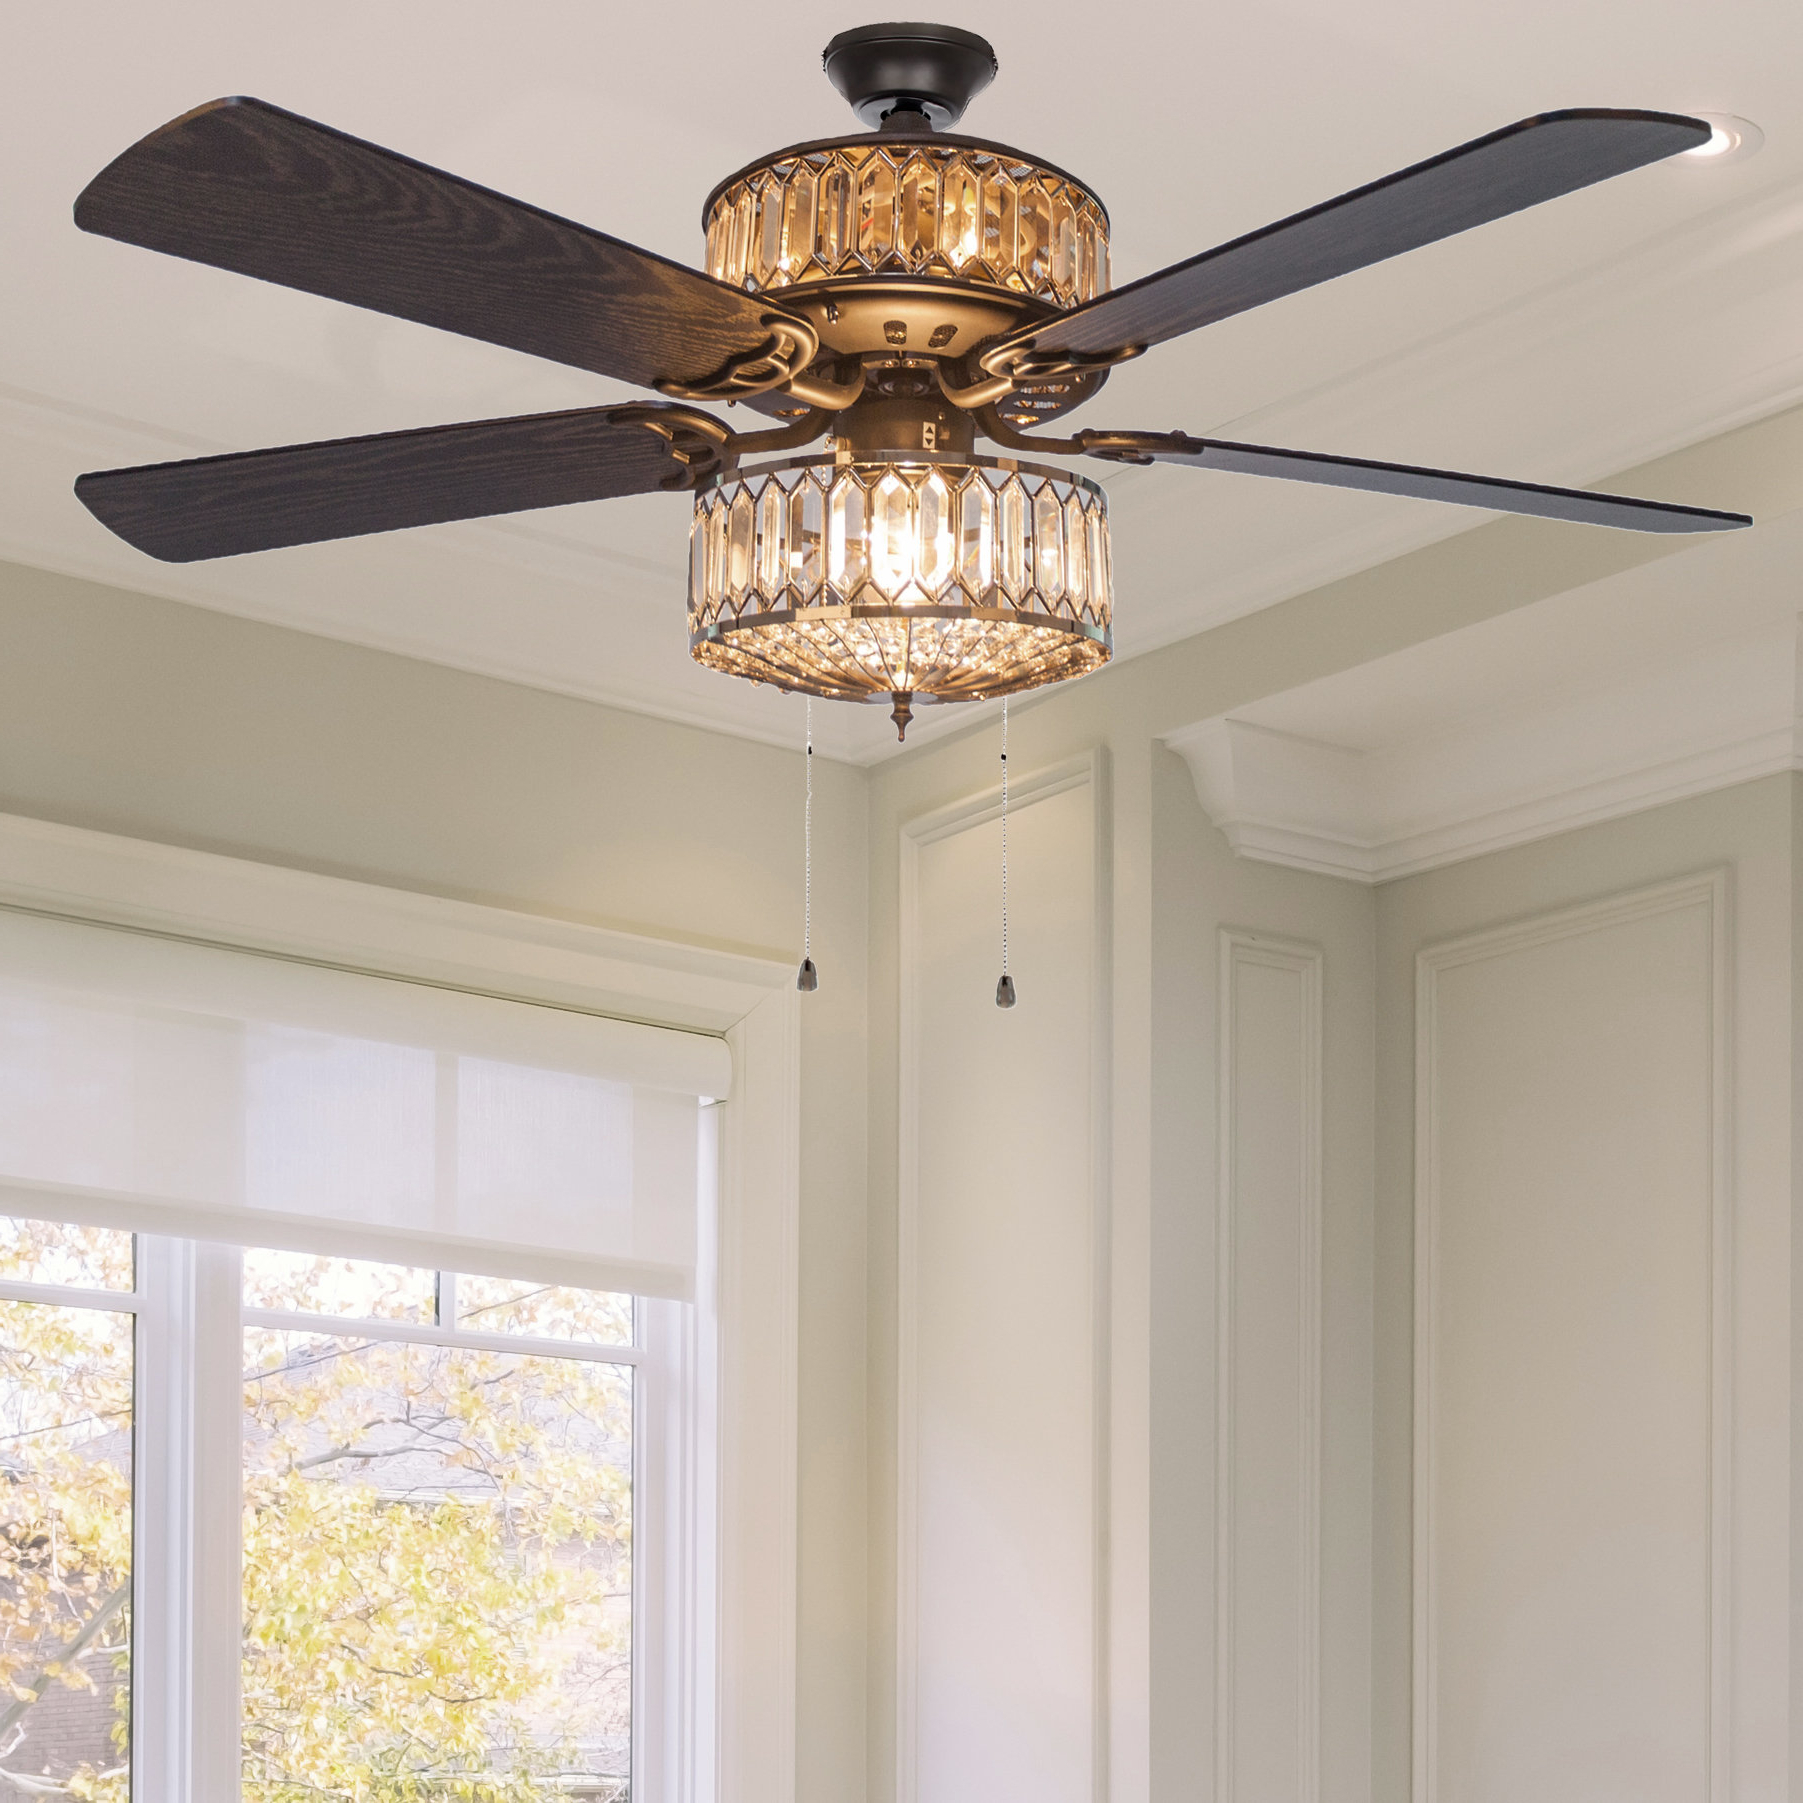 "52"" Norah 5 Blade Ceiling Fan With Remote, Light Kit Included Intended For Most Popular Norah 5 Blade Ceiling Fans (View 1 of 20)"